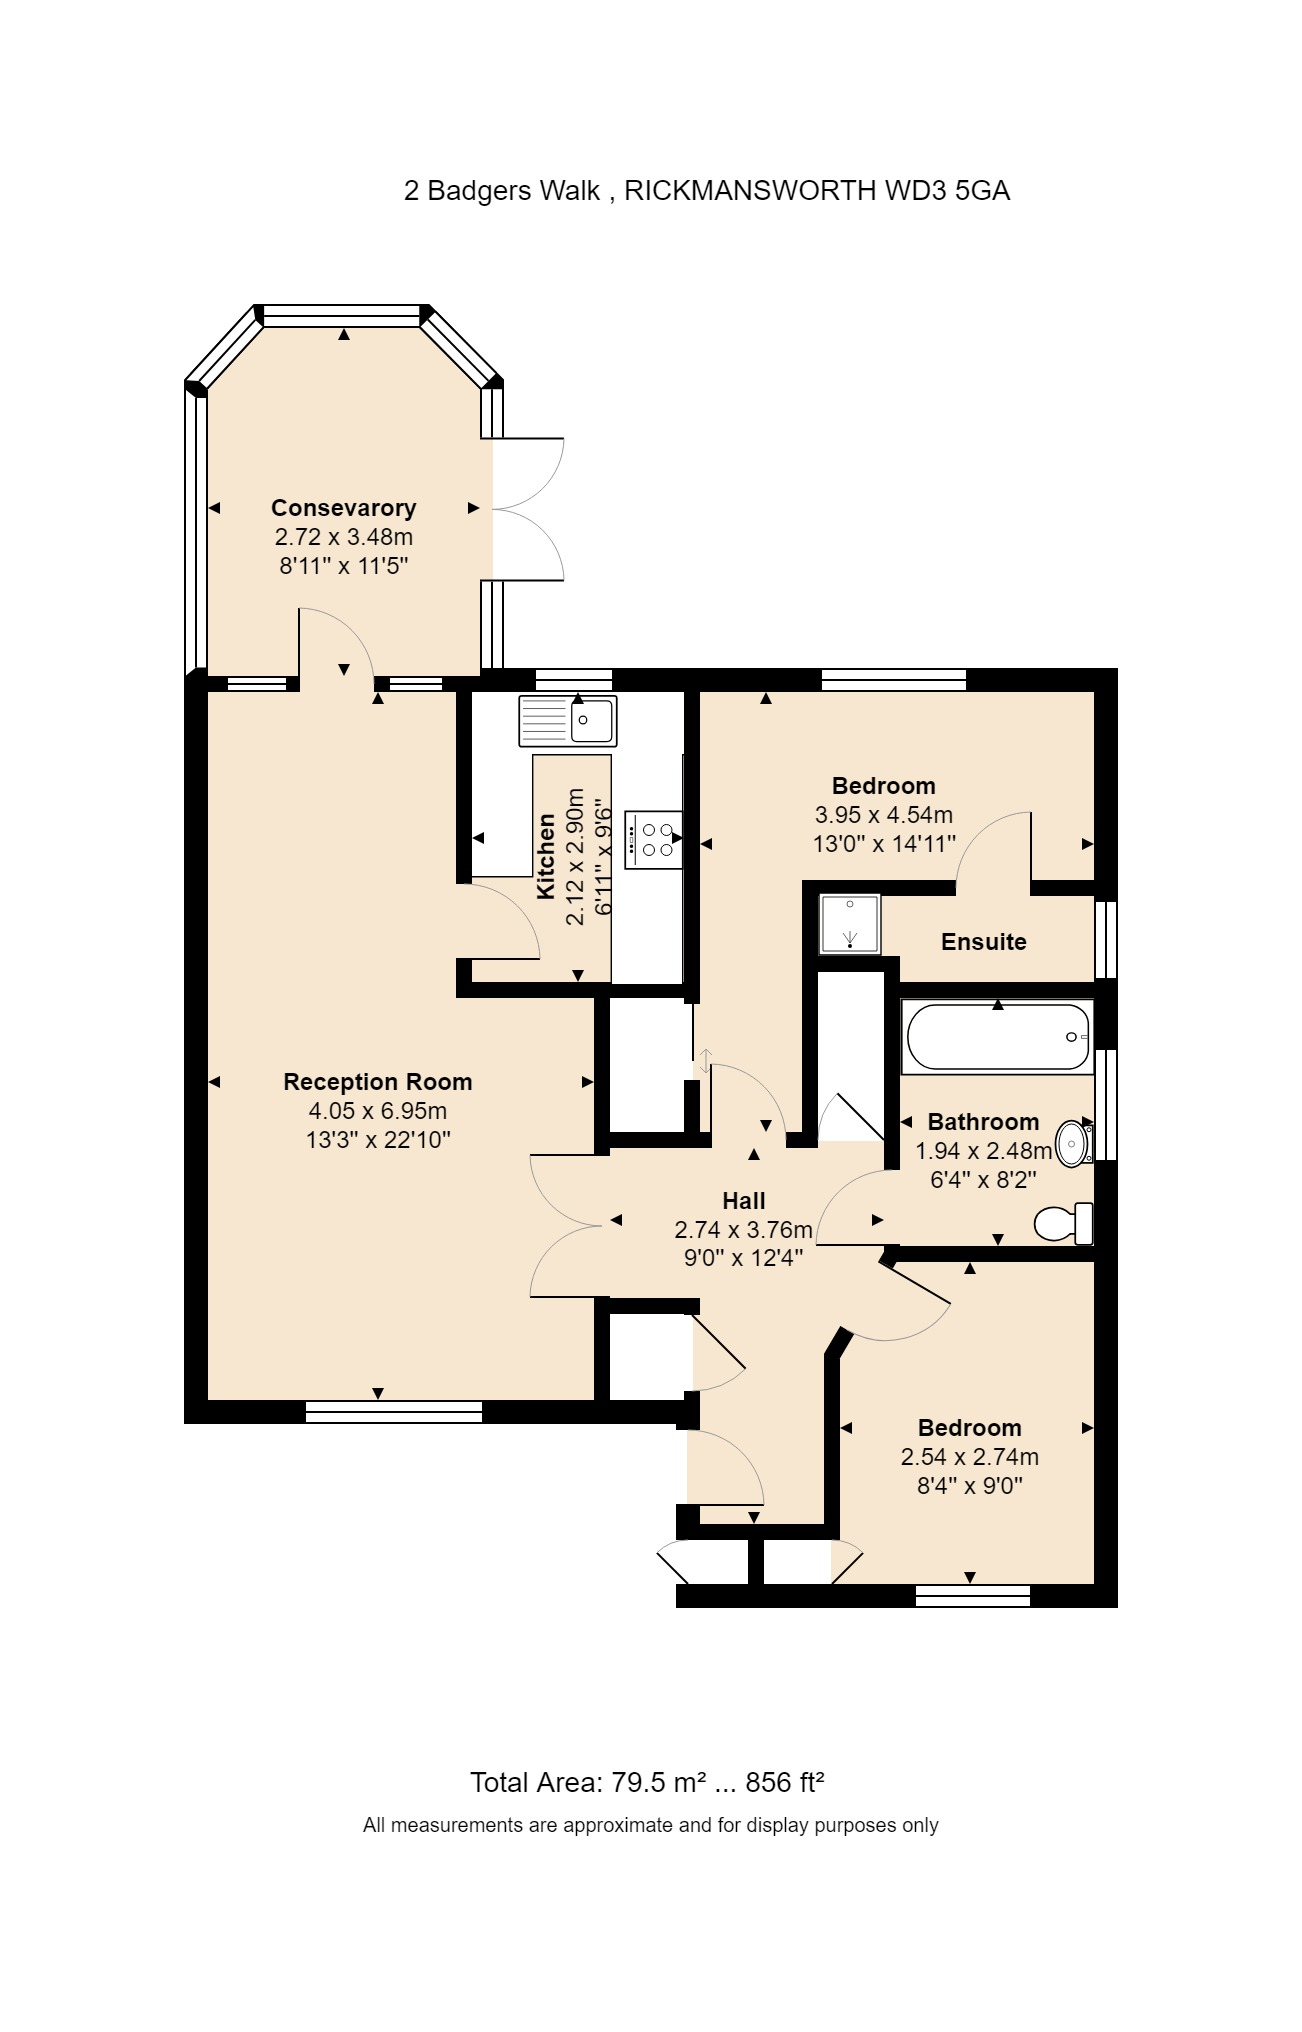 2 Badgers Walk Floorplan